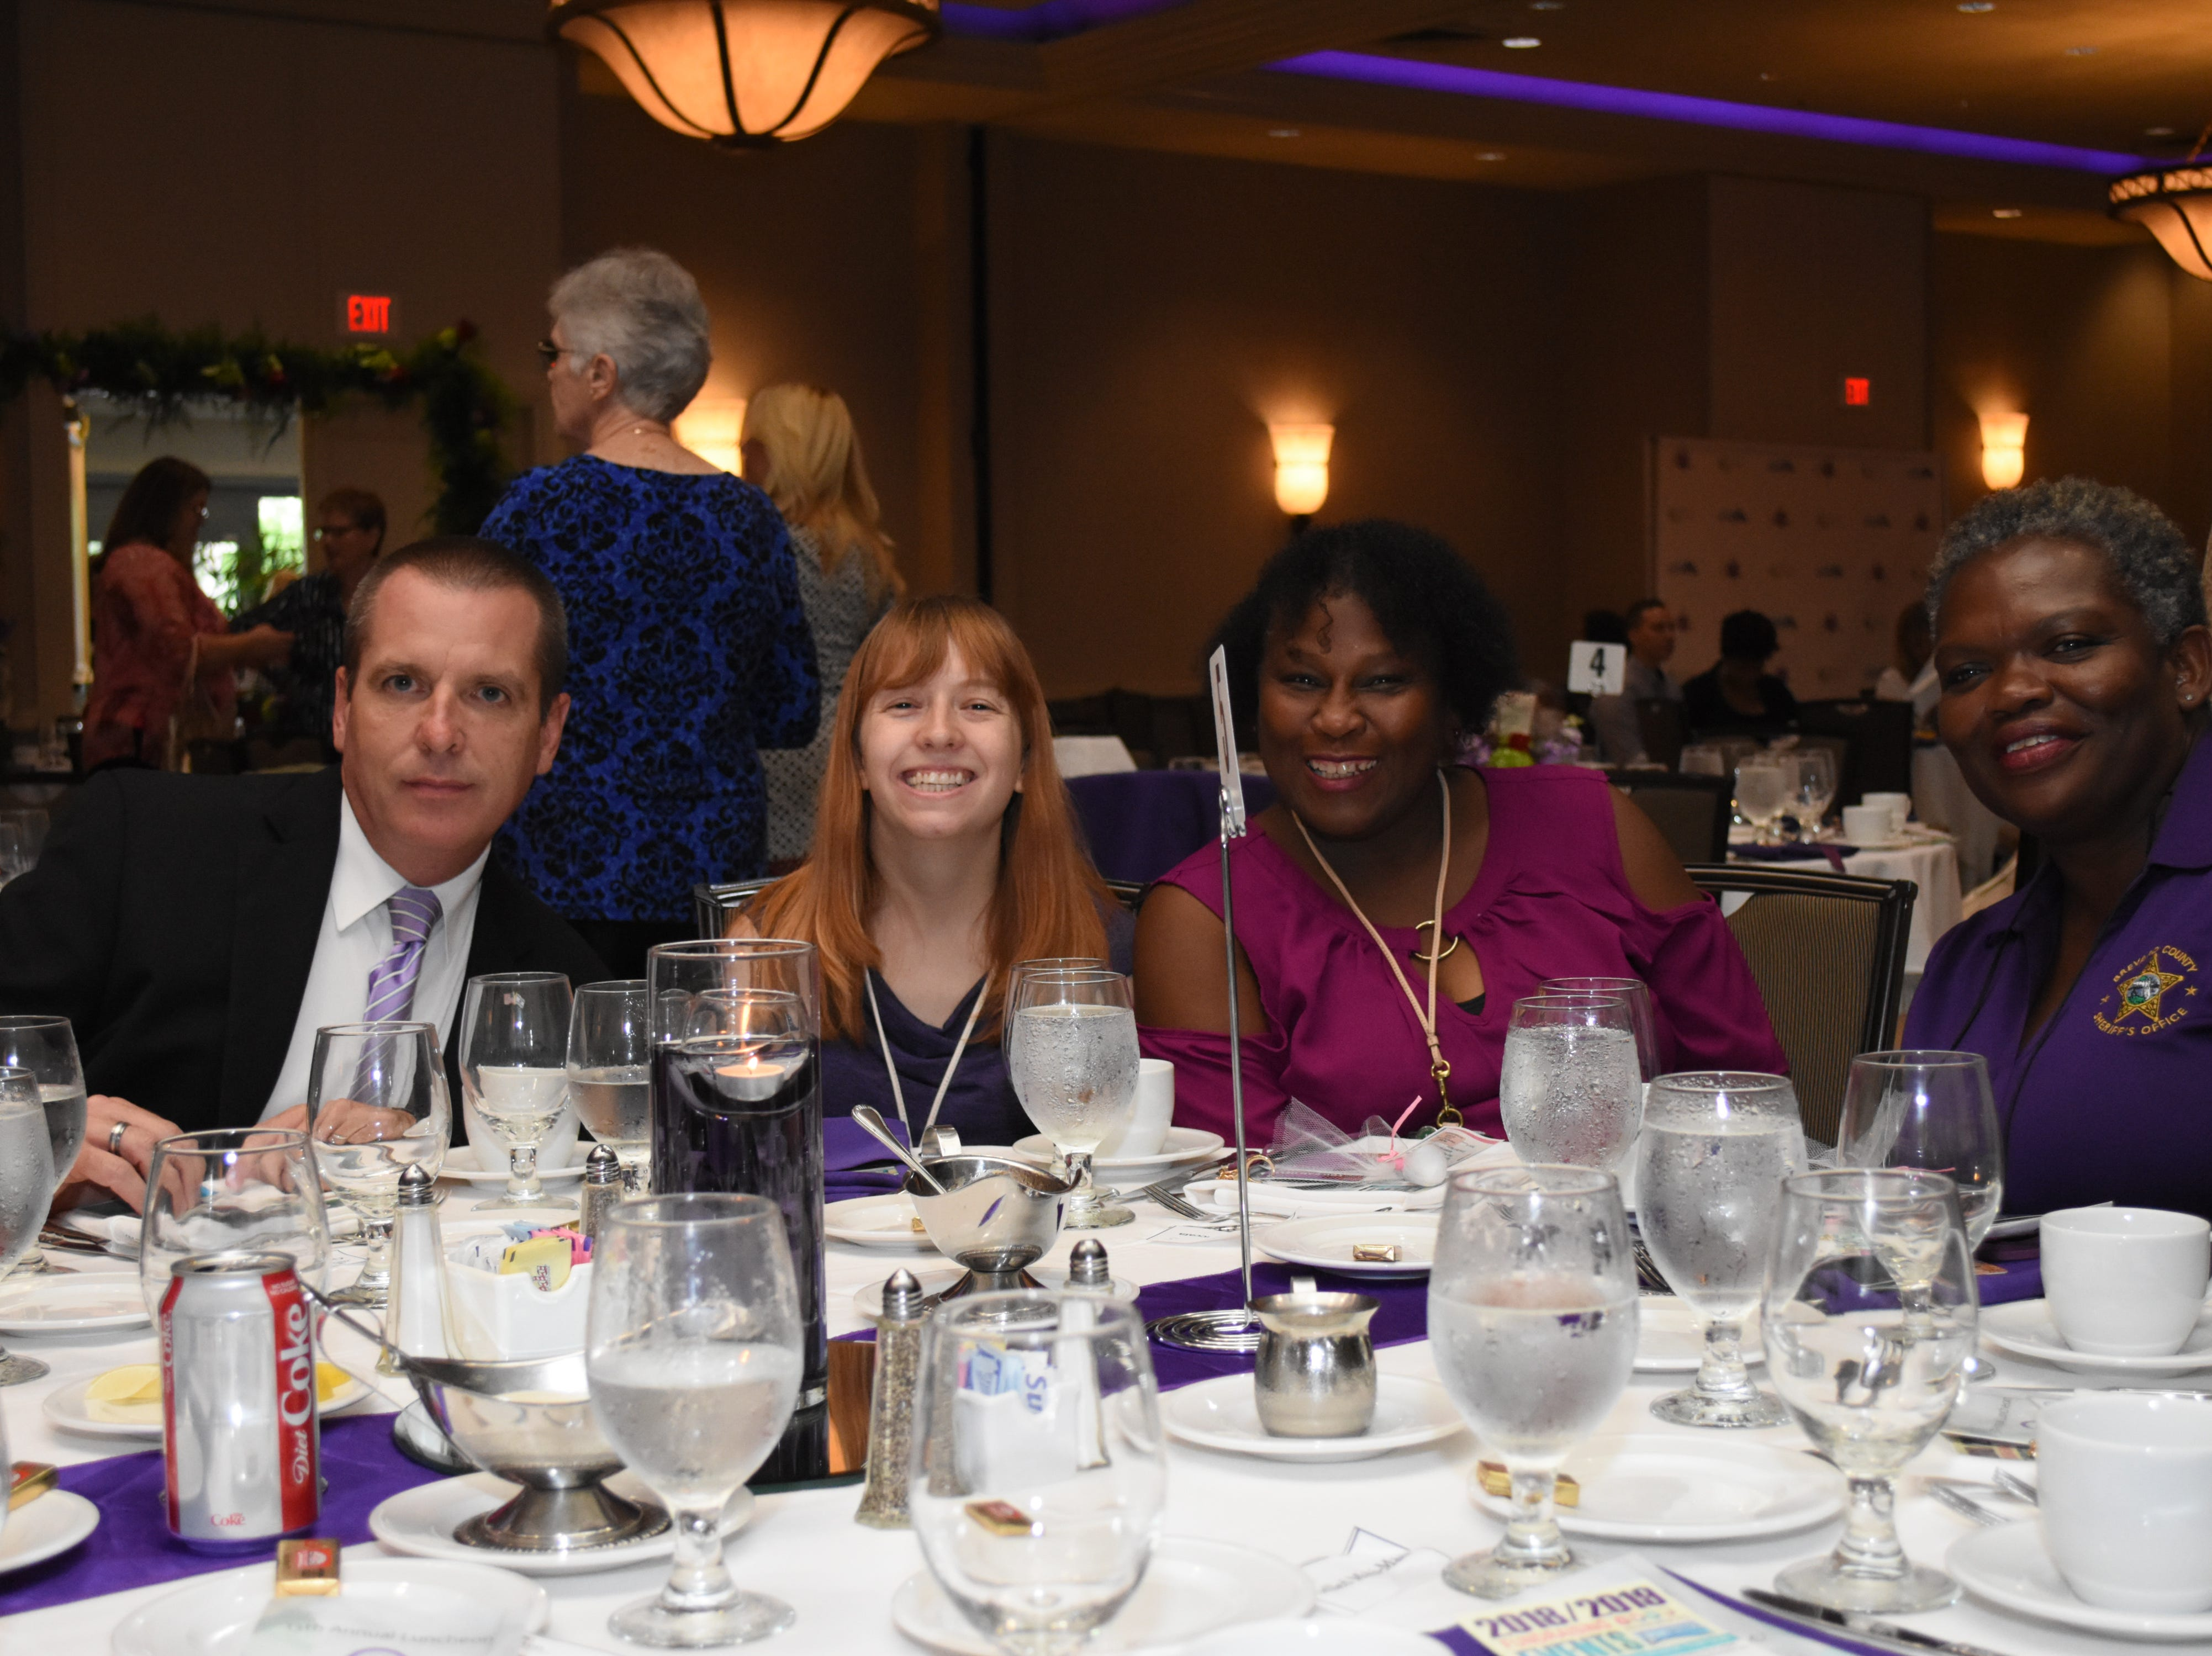 Alan Morrison, Ashley Wong, Cynthia Matthews, and Peggy Brooks with the Brevard Sherrifs office pose for a photo at their table.